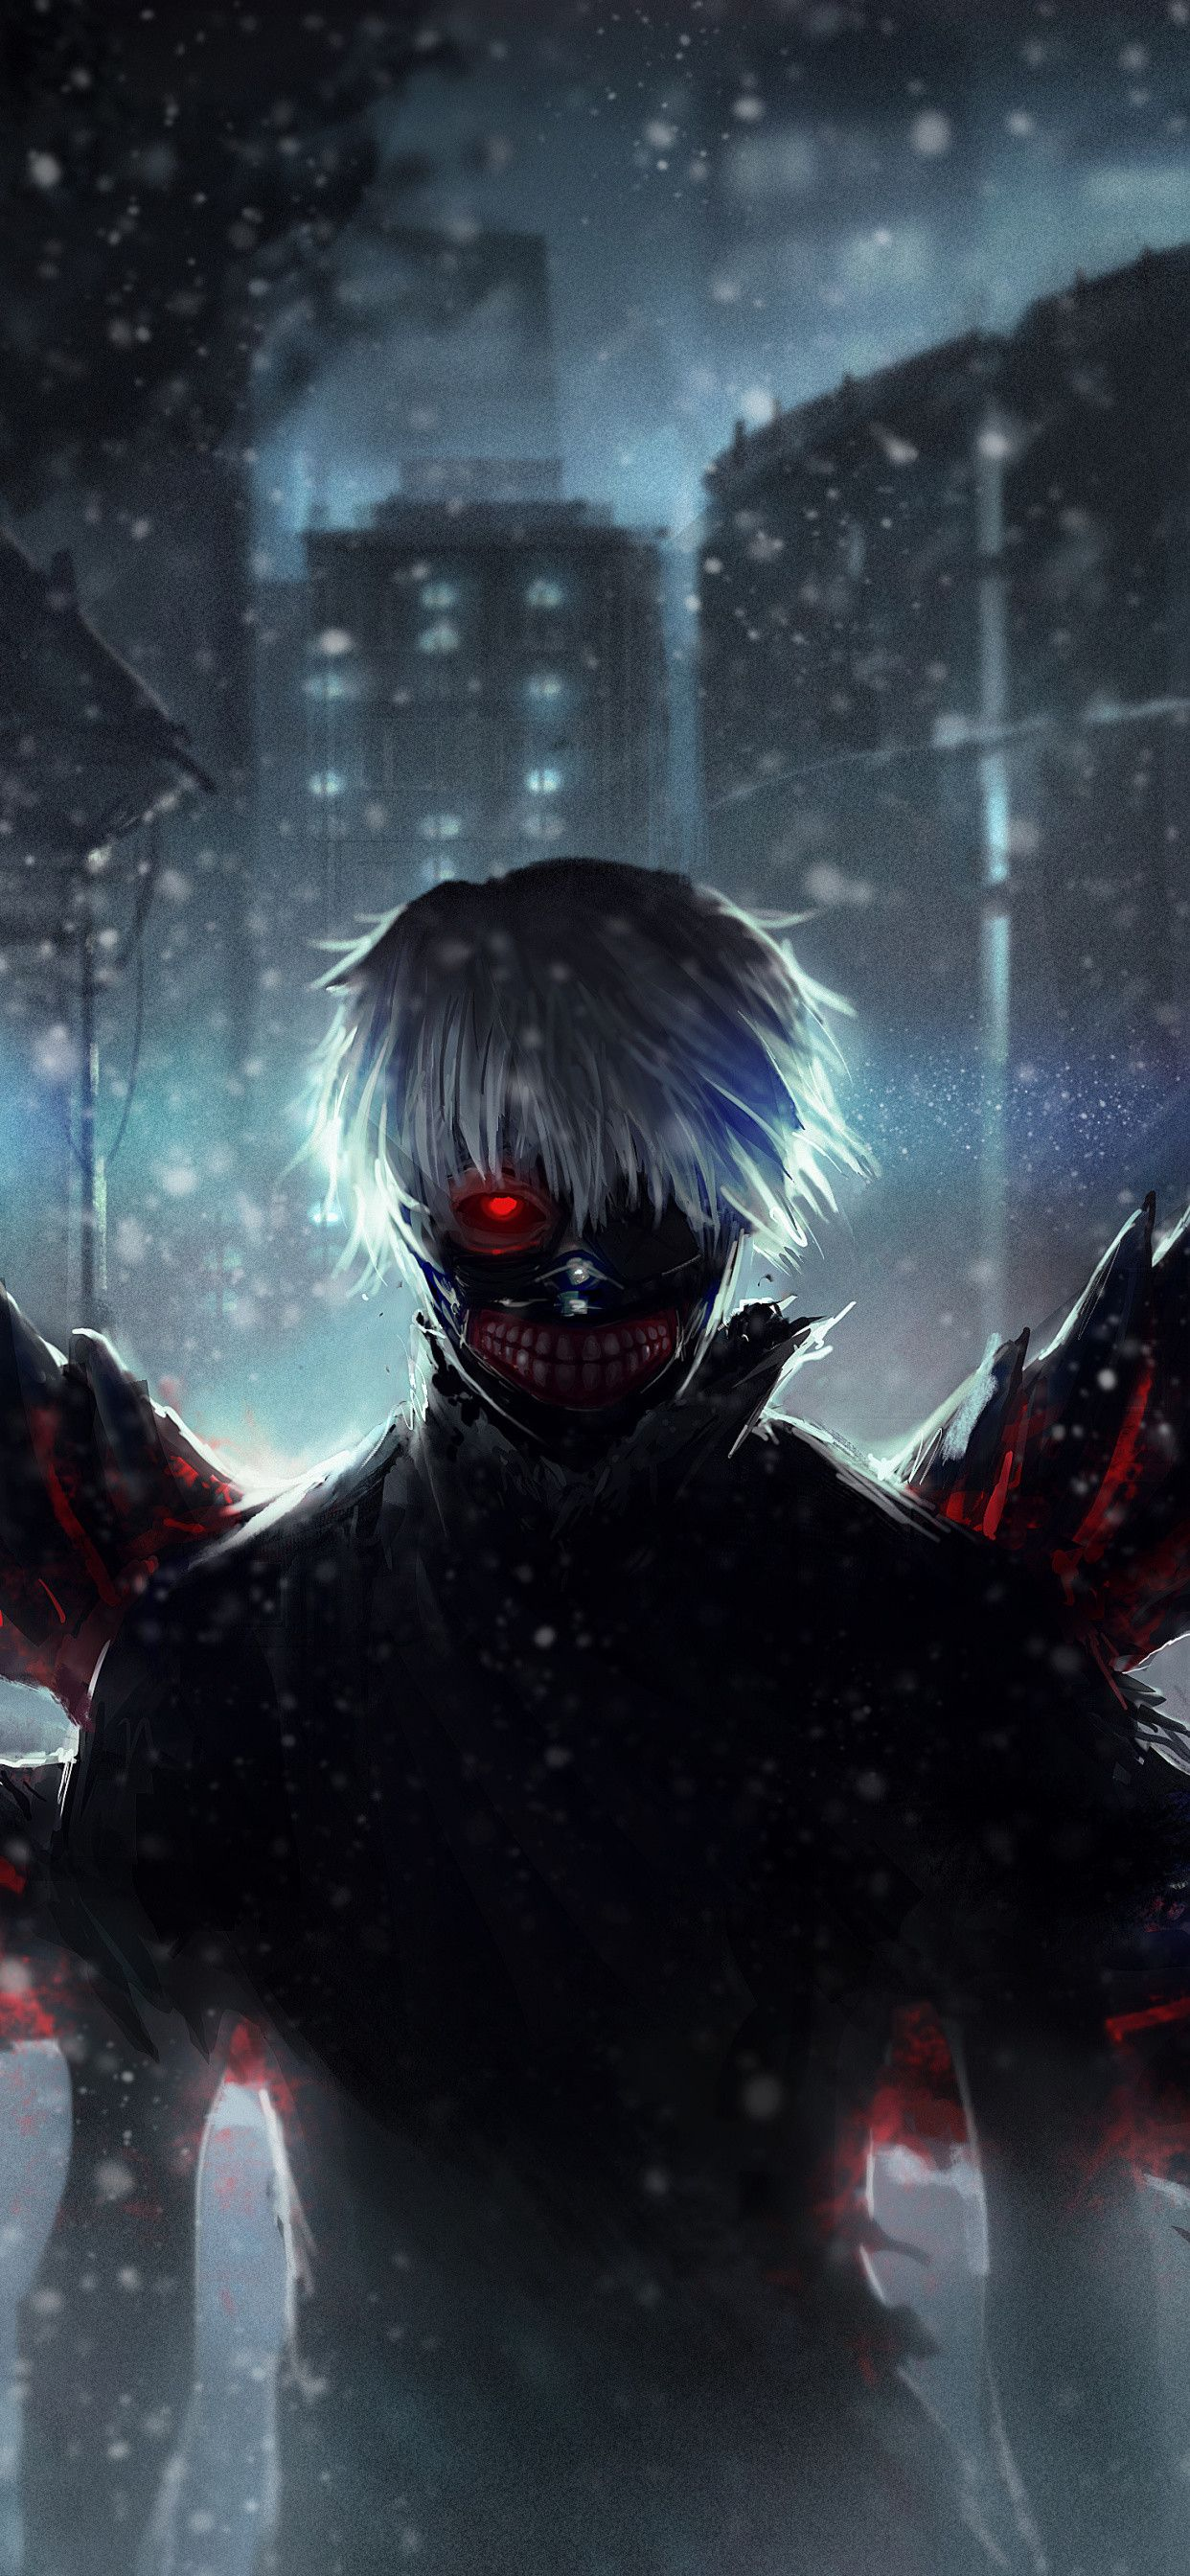 Dark Anime Iphone Wallpapers Top Free Dark Anime Iphone Backgrounds Wallpaperaccess